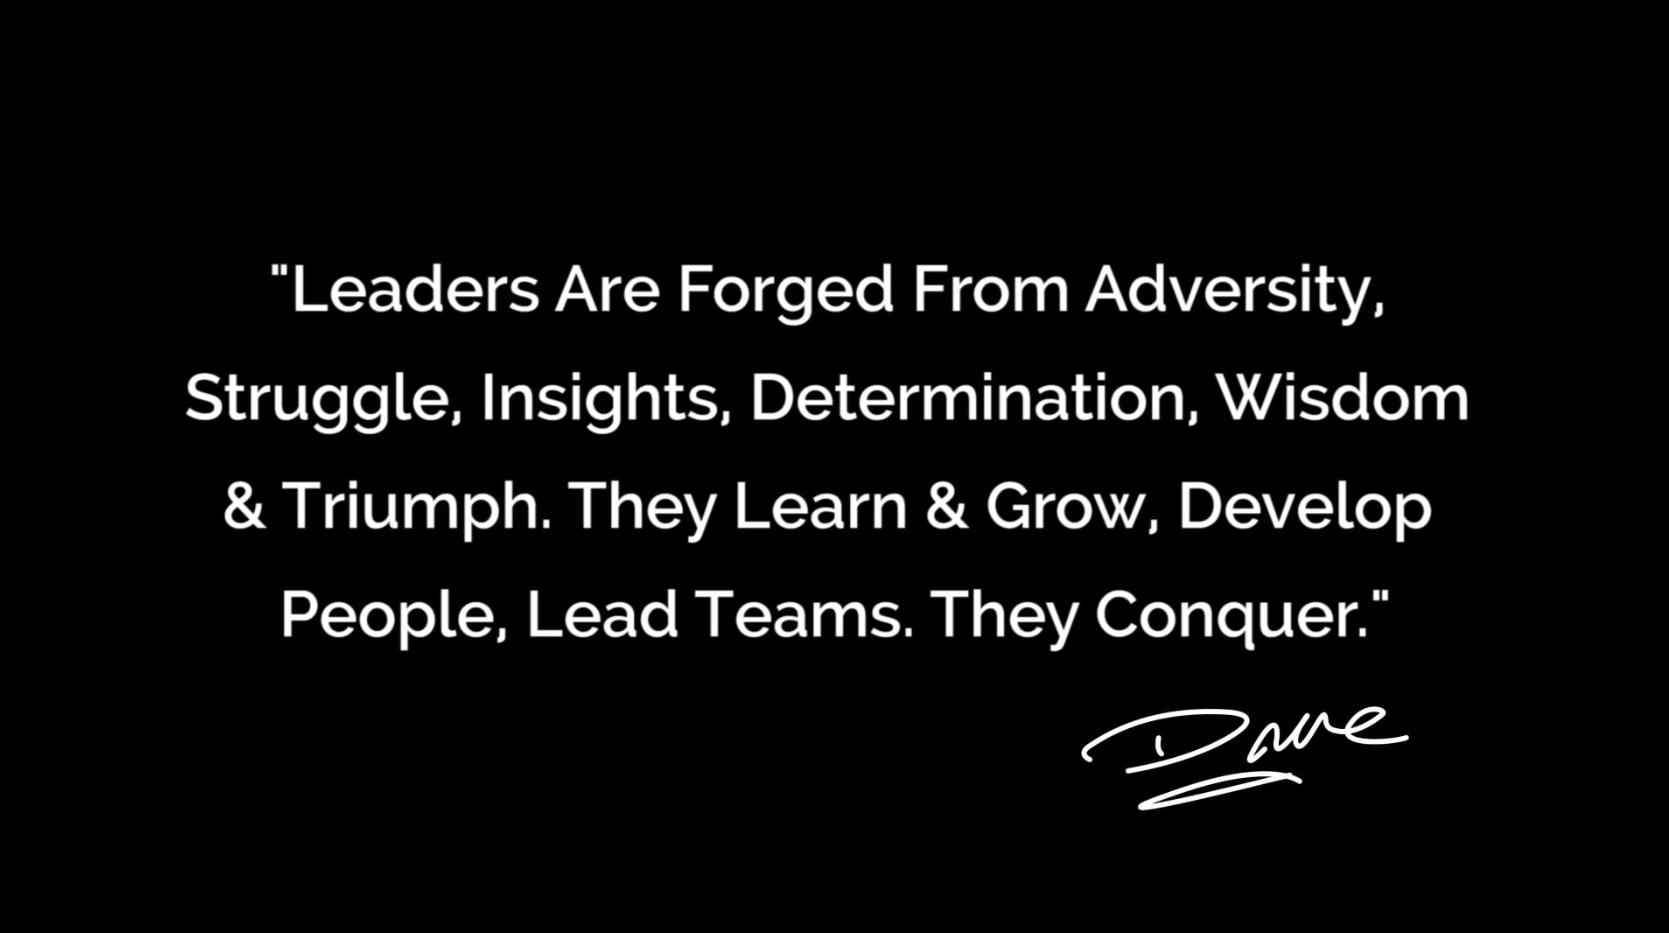 Leaders that Conquer